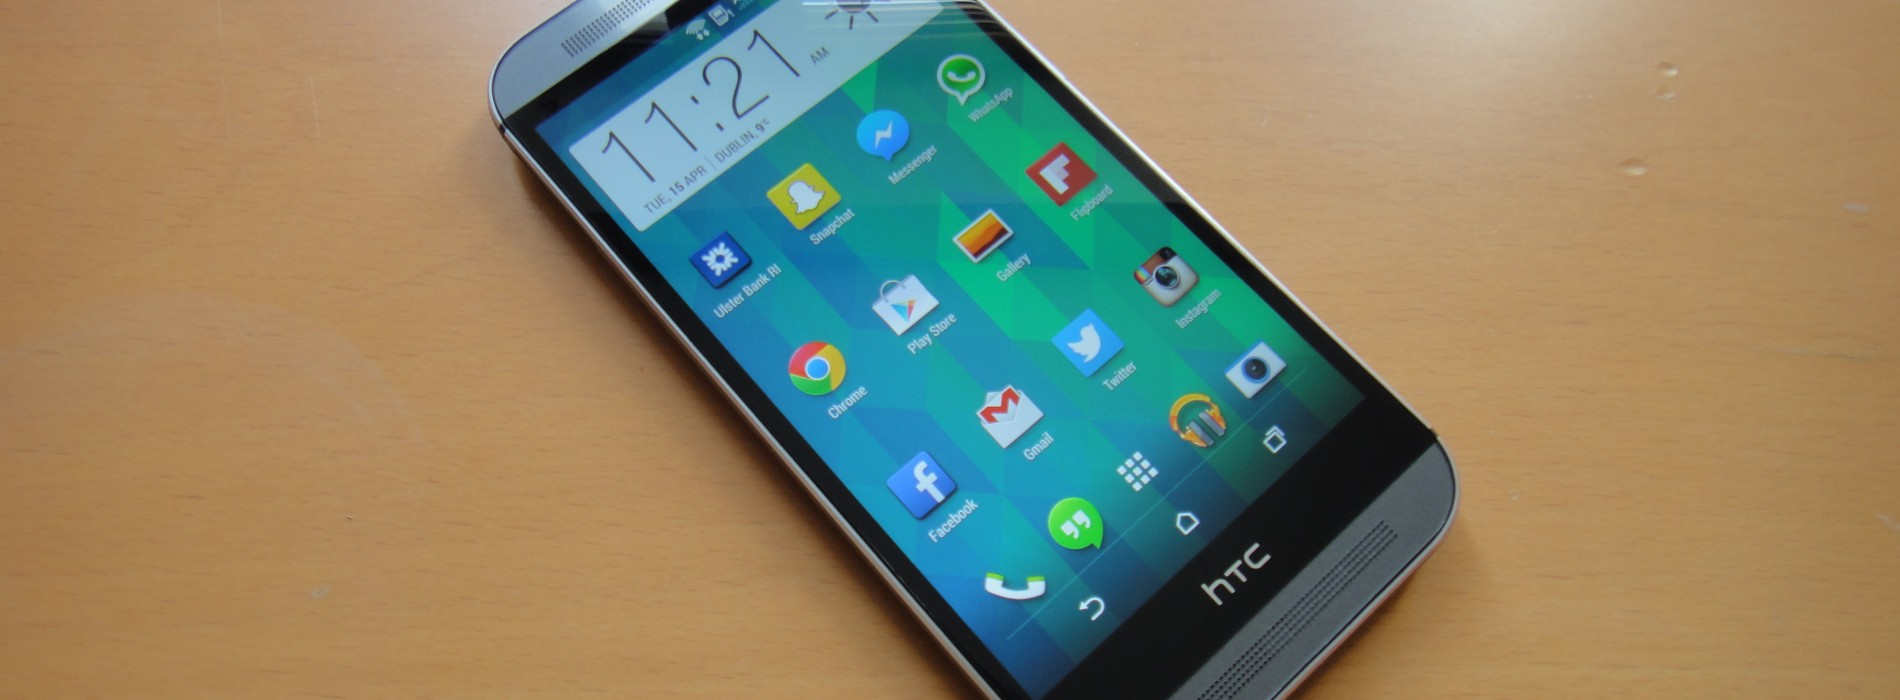 European HTC One M8 Android 4.4.3 update rolling out